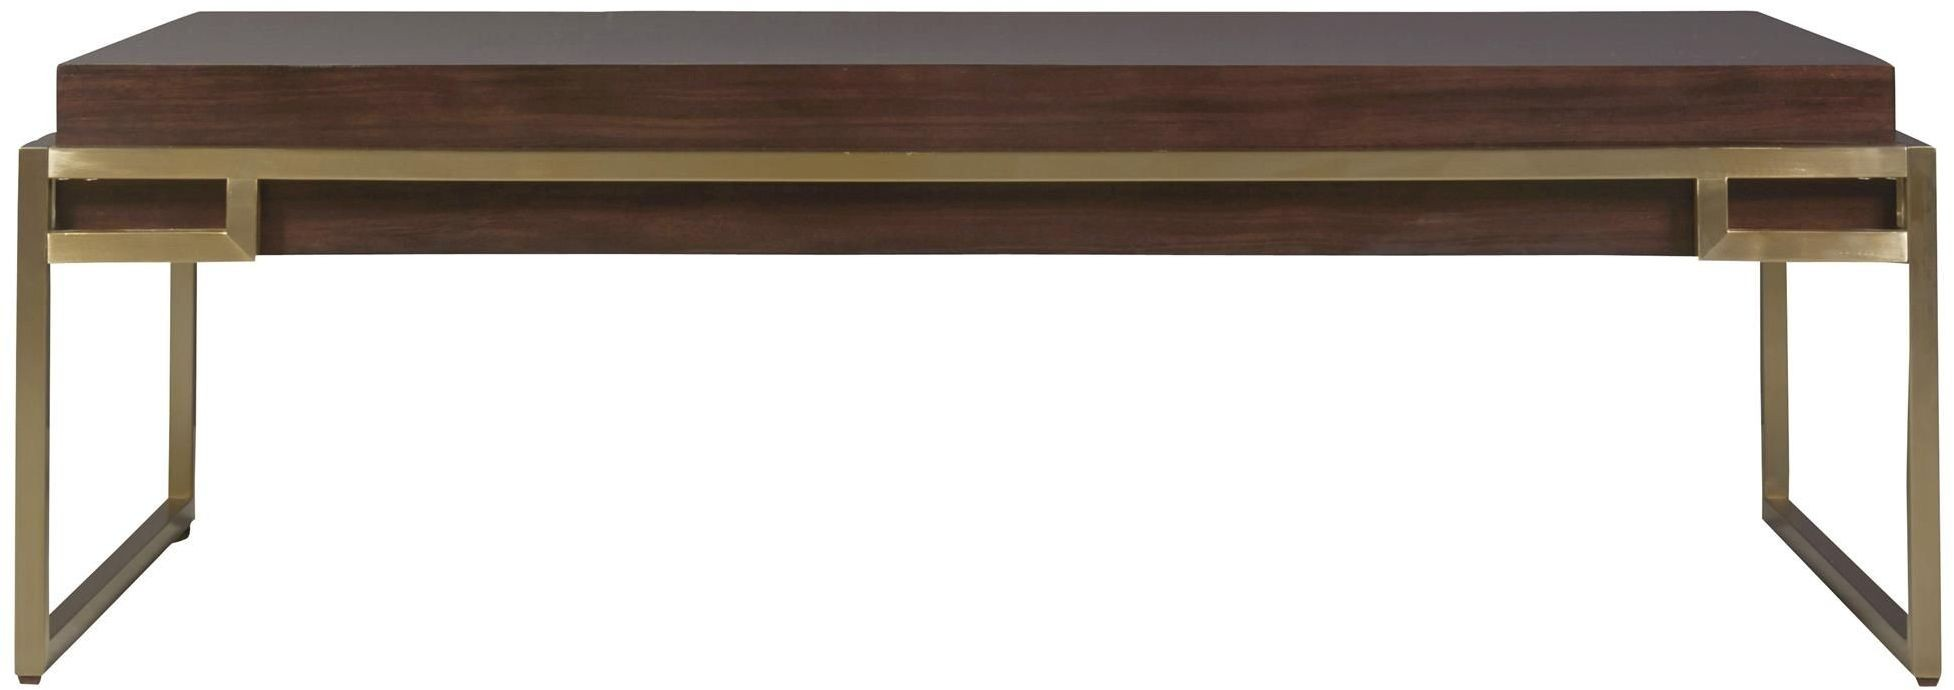 Hayworth Brown And Gold Cocktail Table From Universal Coleman Furniture